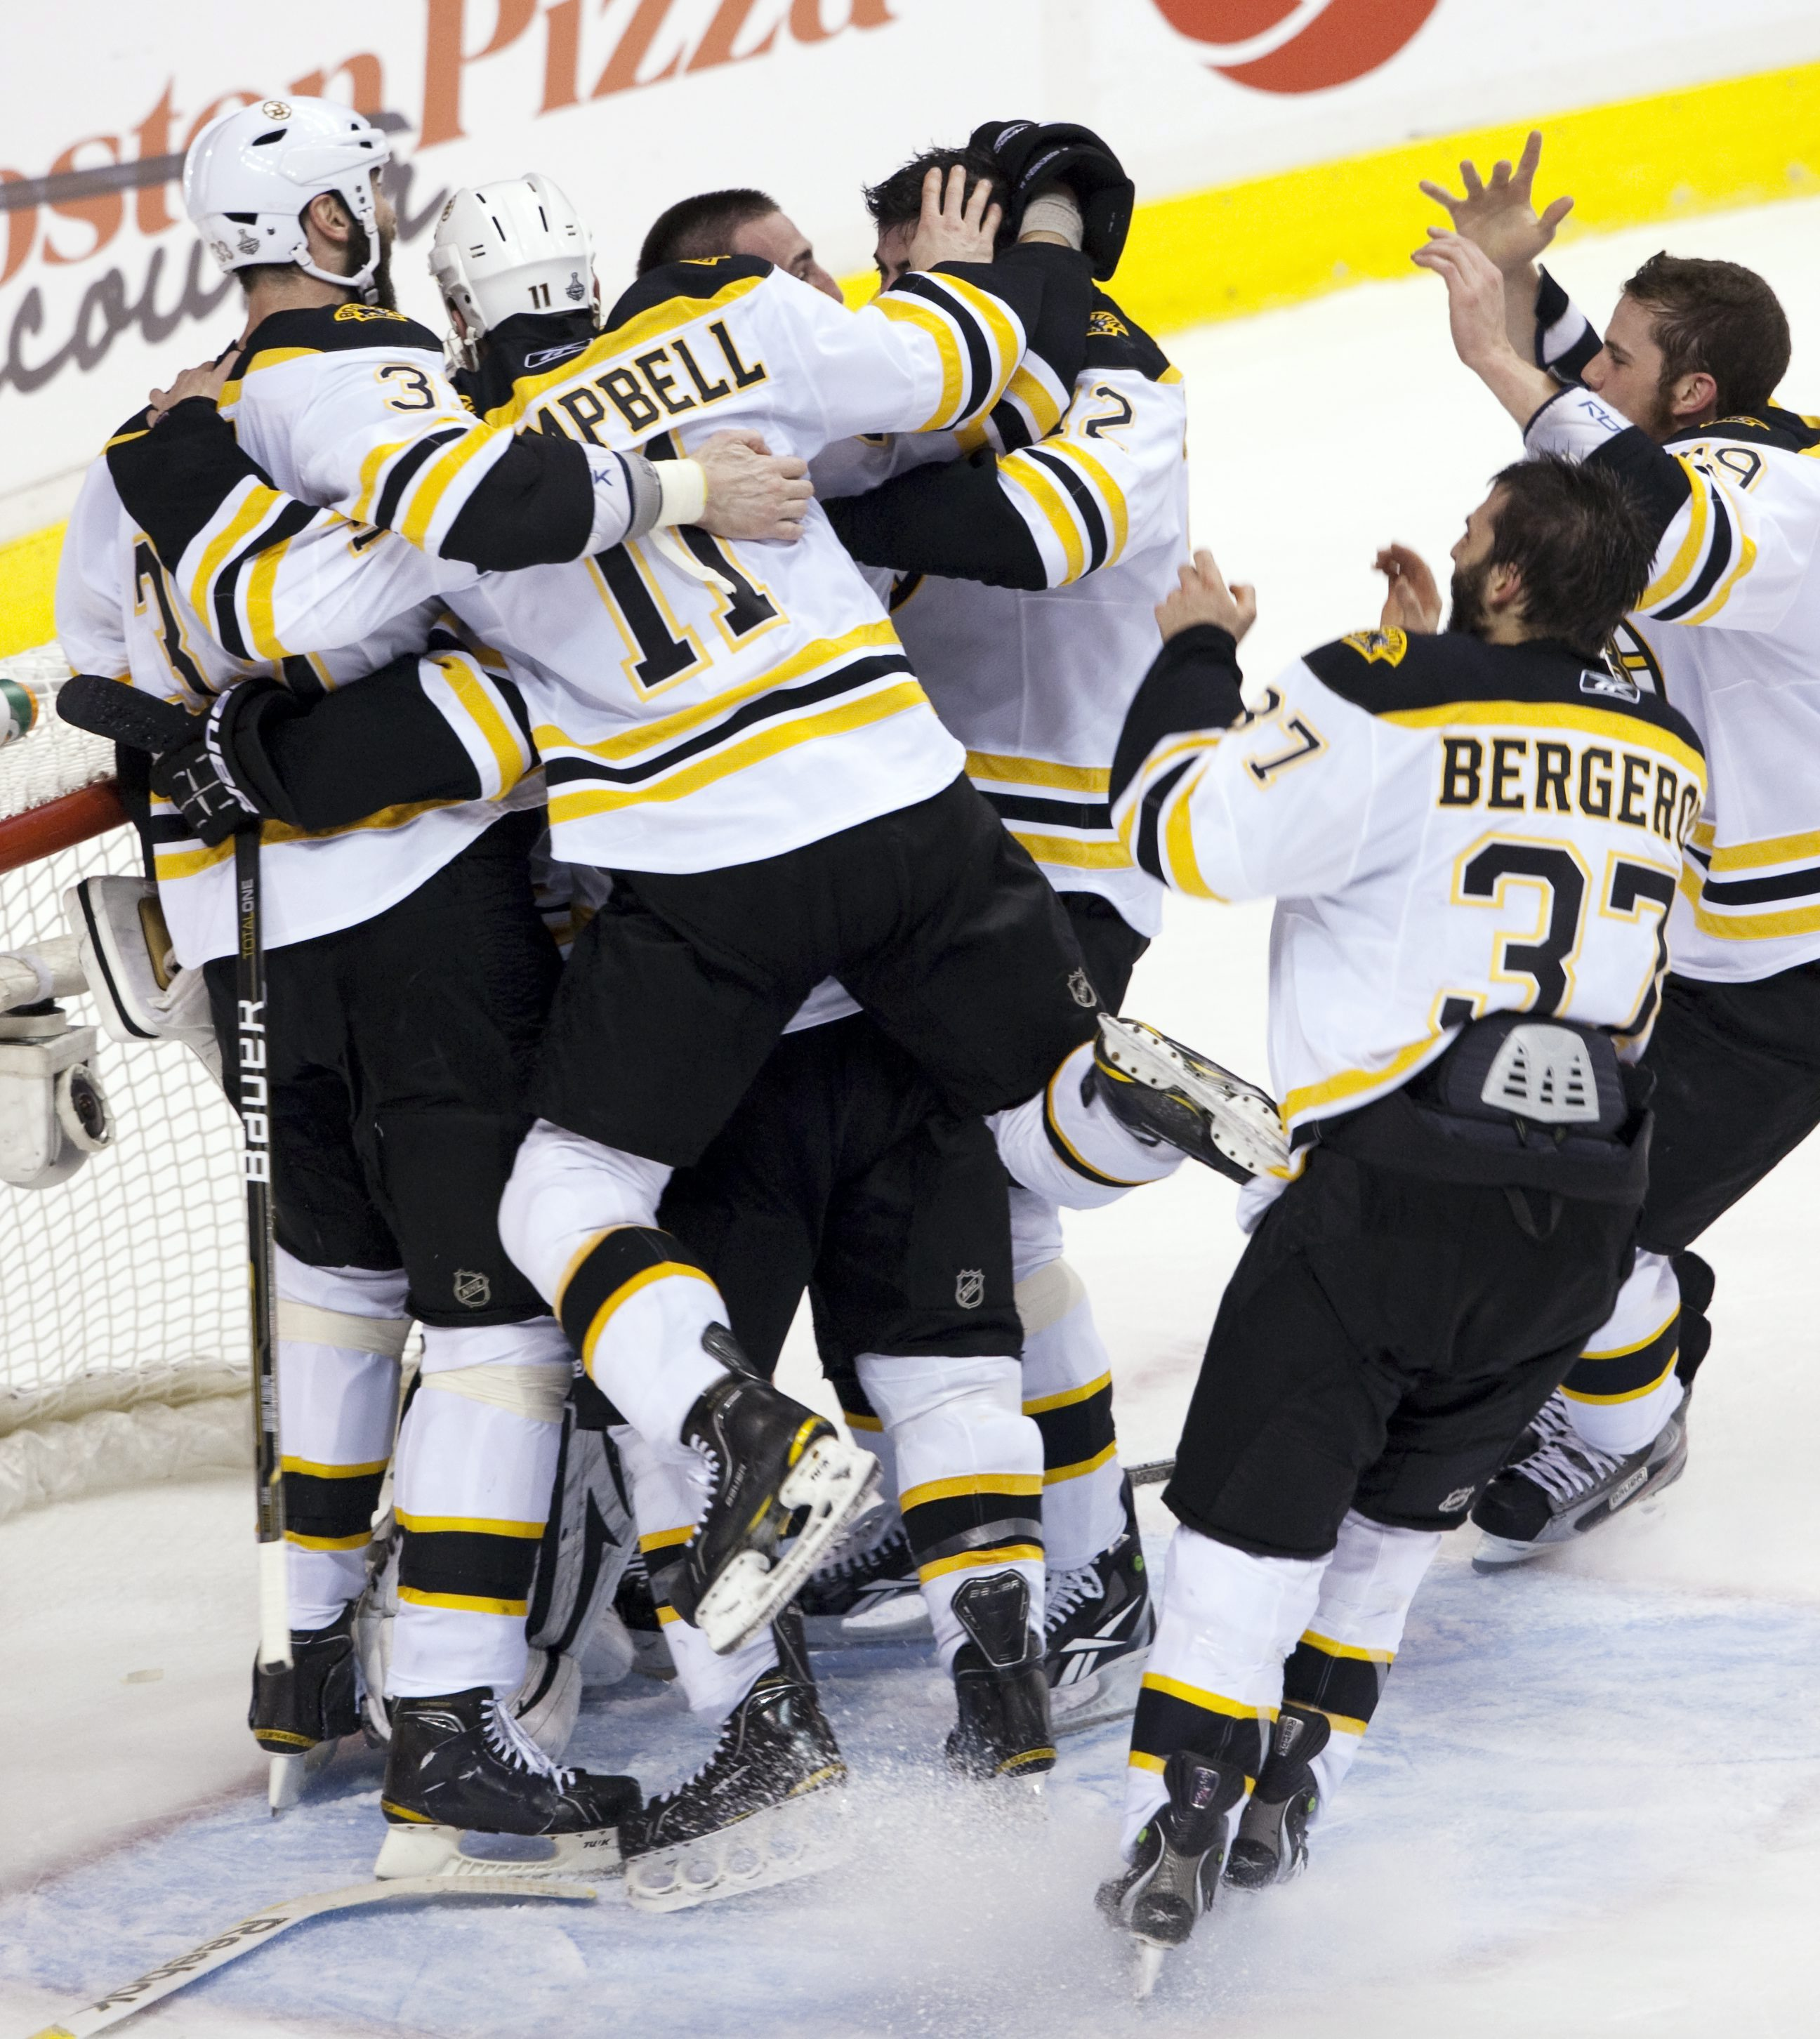 Boston Bruins Win Stanley Cup, Beat Vancouver 4-0